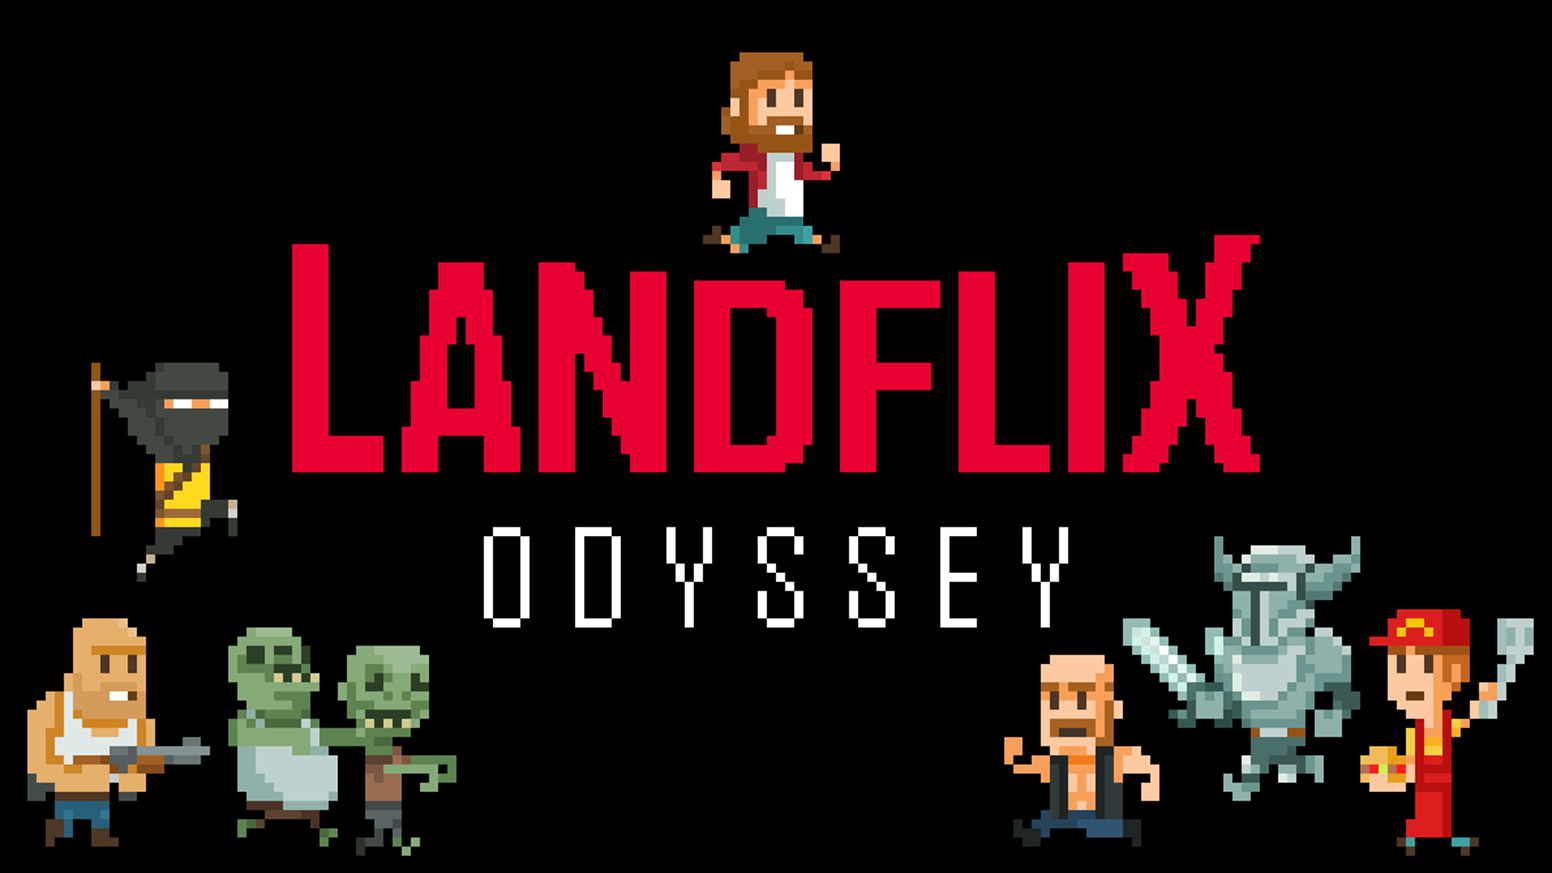 The first Netflix's parody platform videogame featuring the most popular TV shows. A challenging experience coming to PC and consoles!